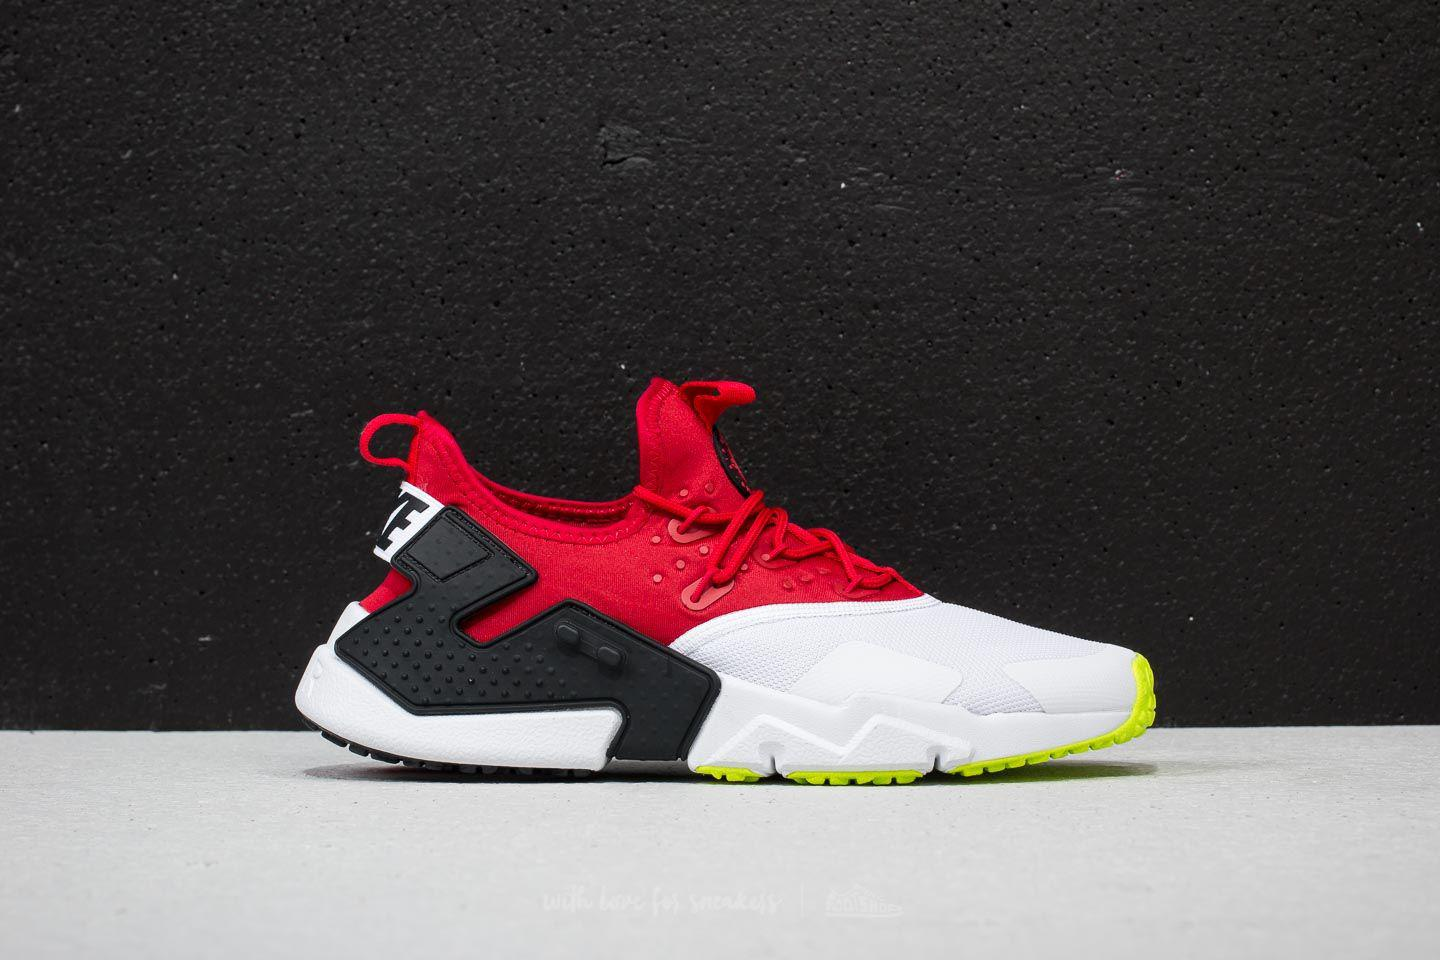 e229045048d7 ... sweden lyst nike air huarache drift gym red white black volt in red for  men 8d0a2